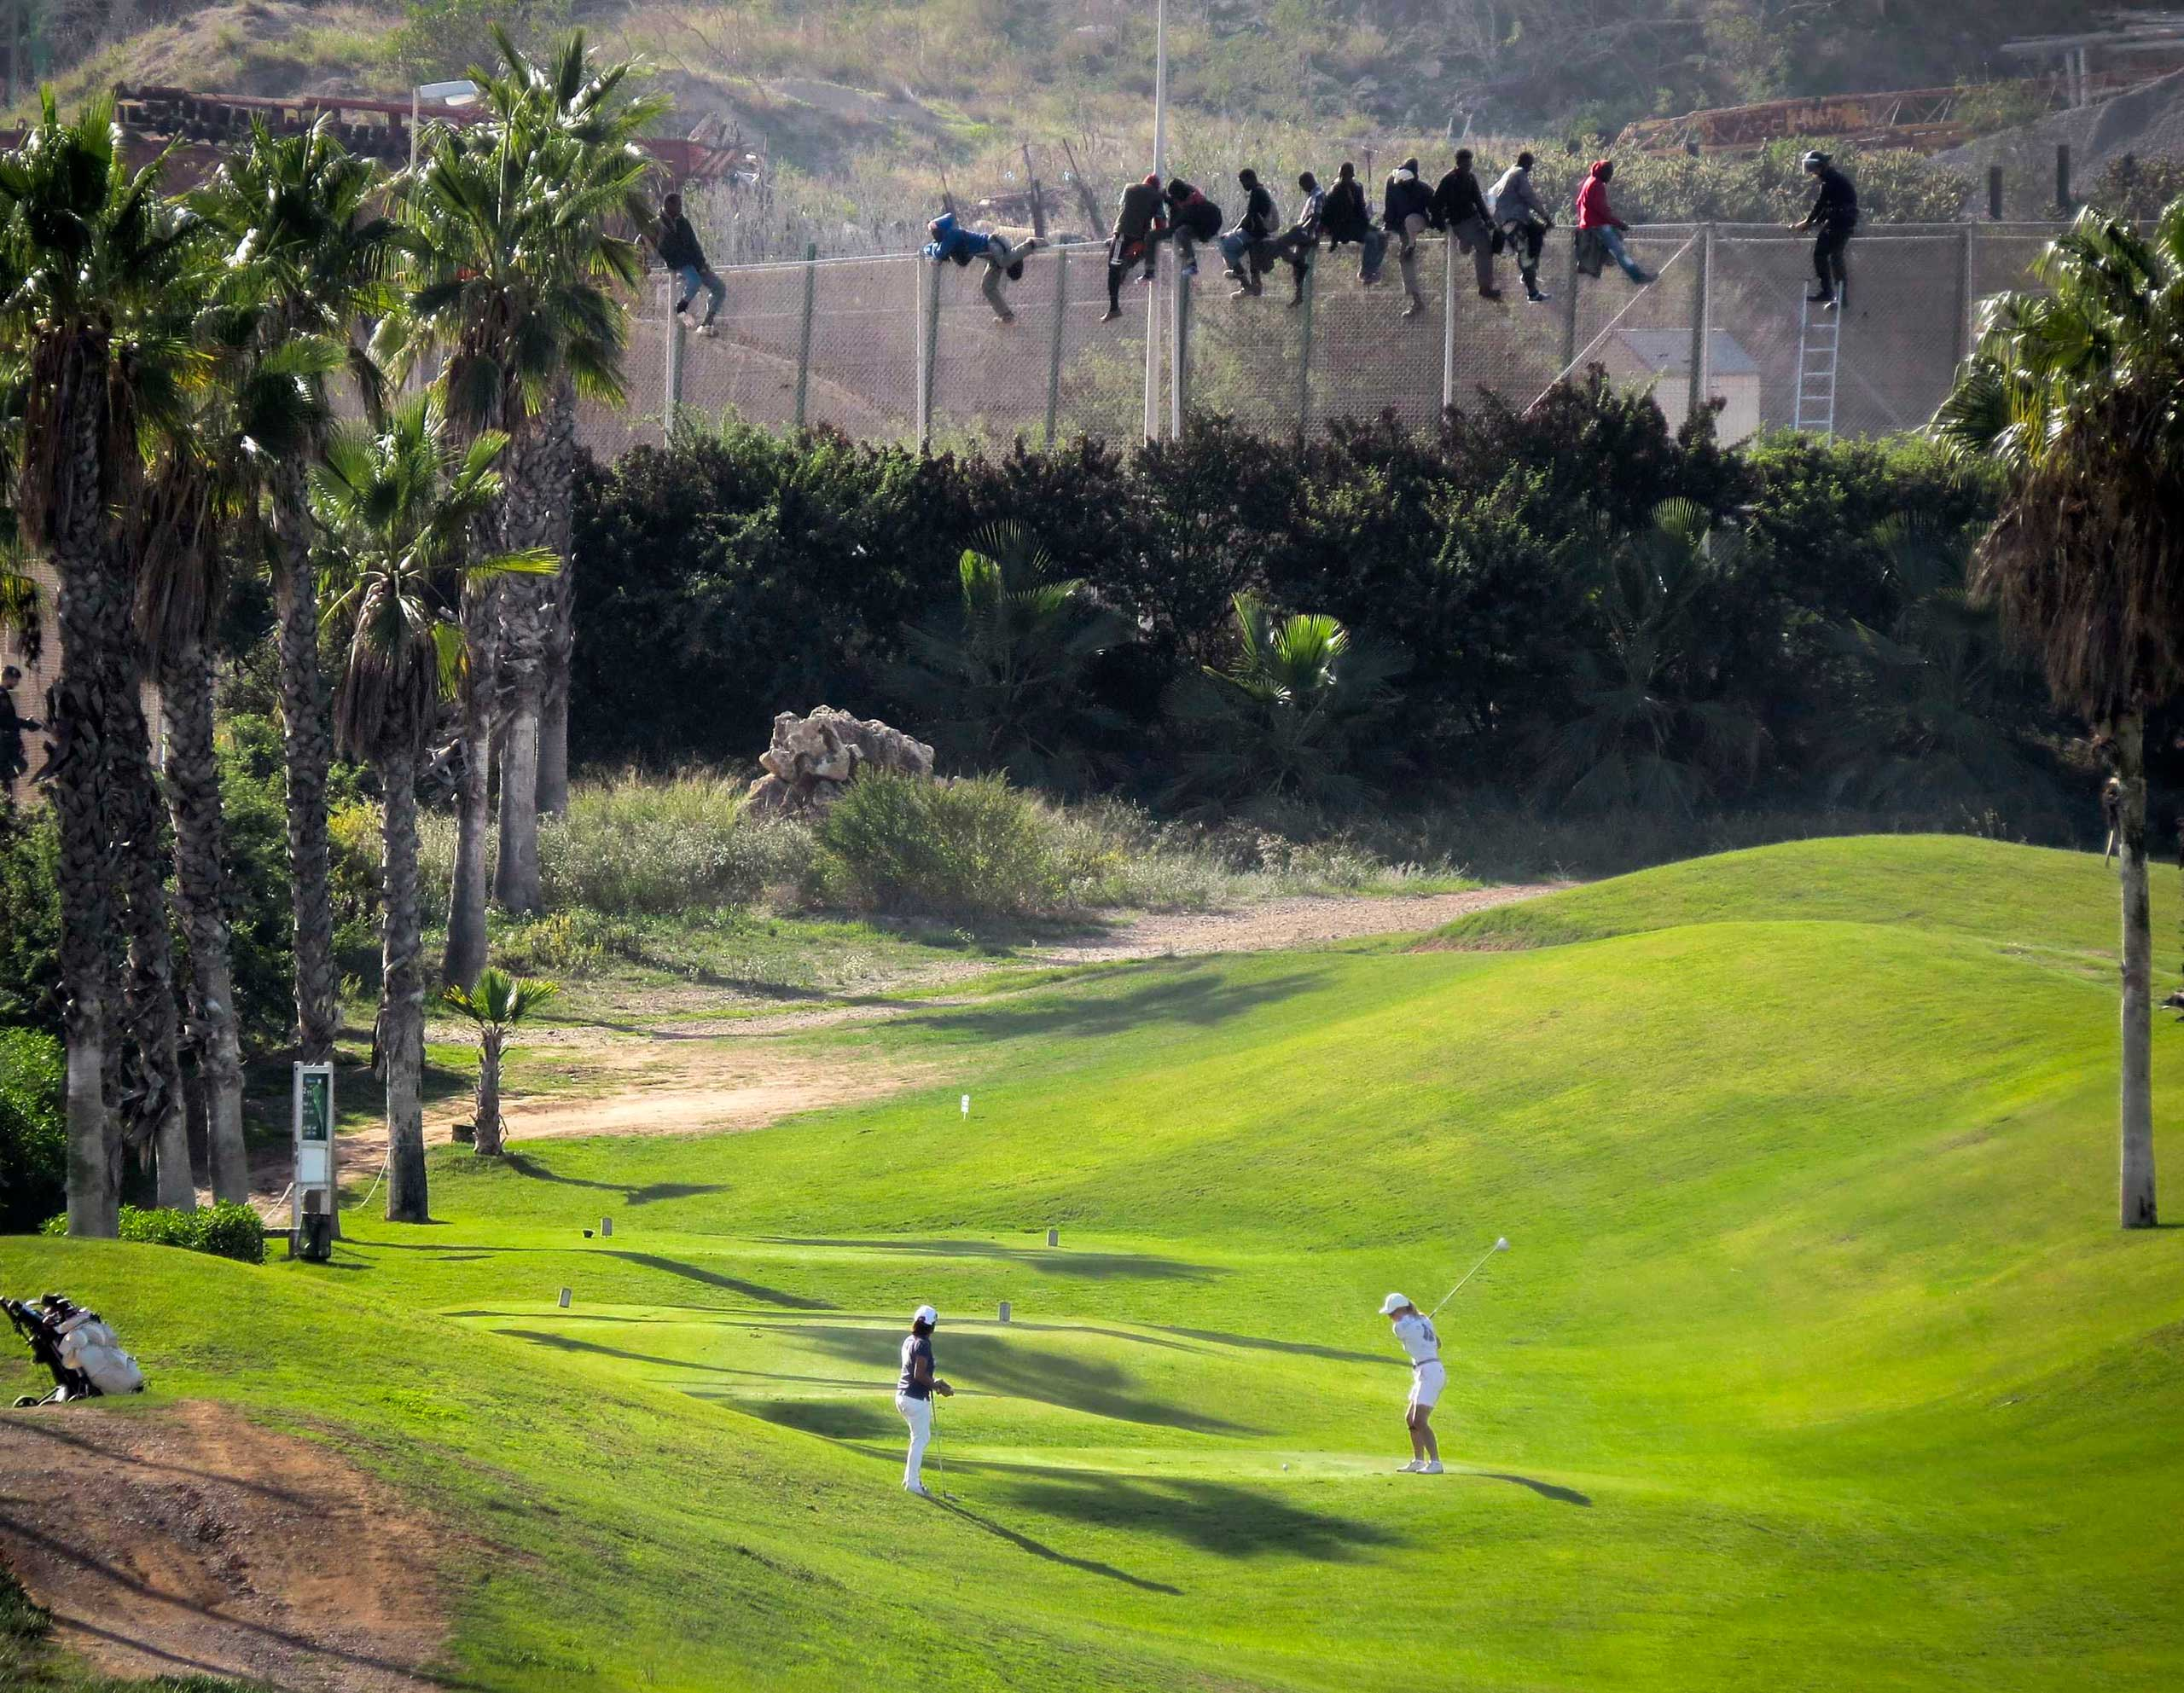 Oct. 22, 2014. A golfer hits a tee shot as African migrants sit atop a border fence during an attempt to cross into Spanish territories between Morocco and Spain's north African enclave of Melilla.